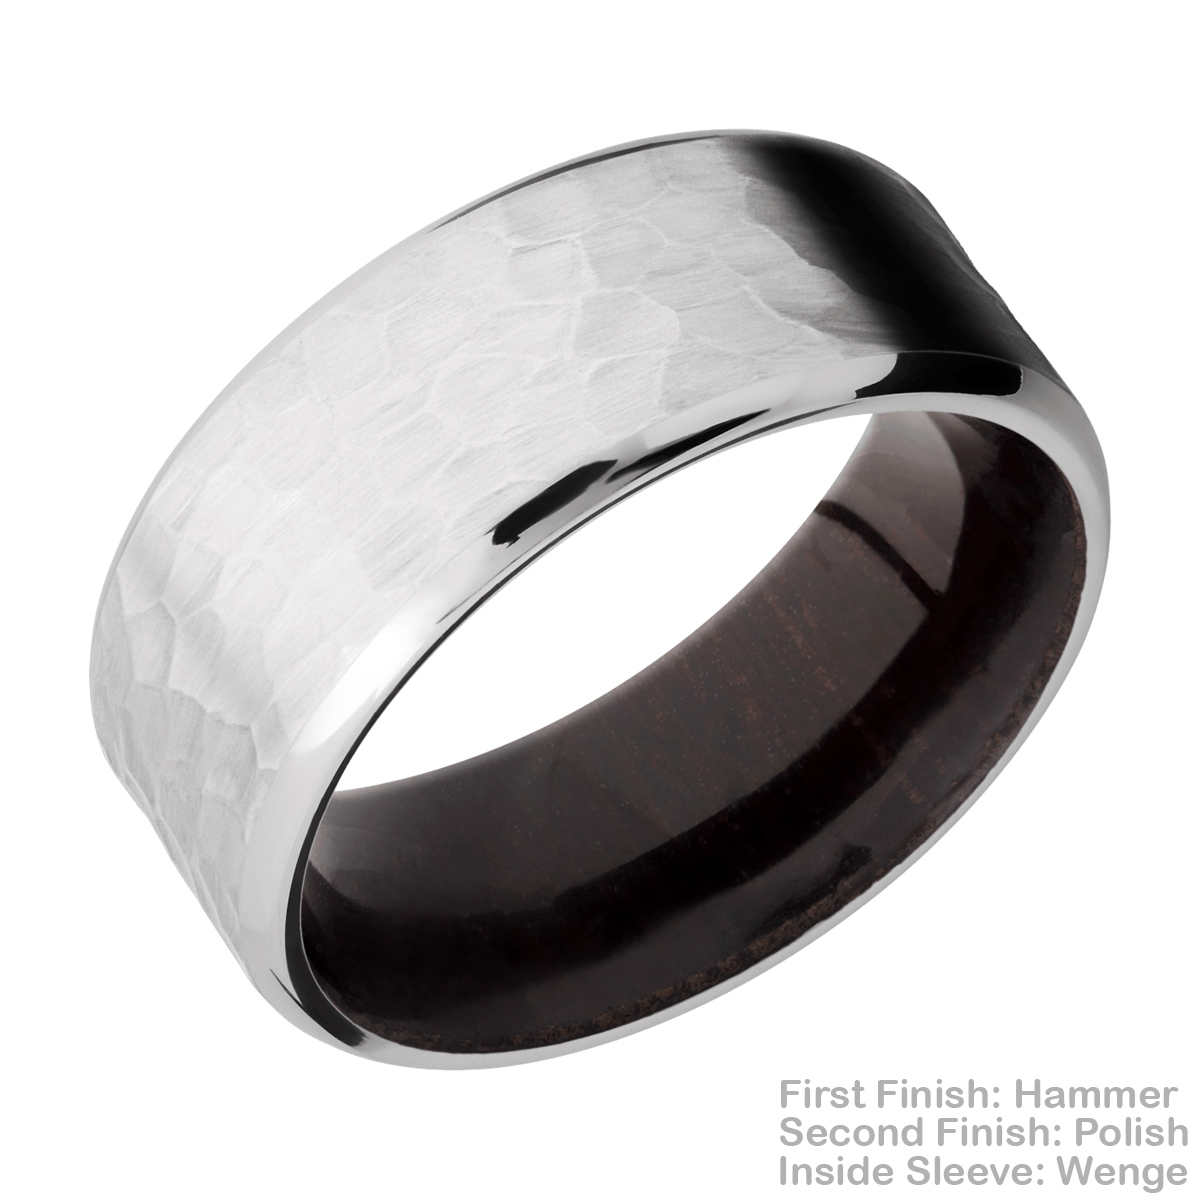 Lashbrook HWSLEEVECC9B Cobalt Chrome and Hardwood Wedding Ring or Band Alternative View 13